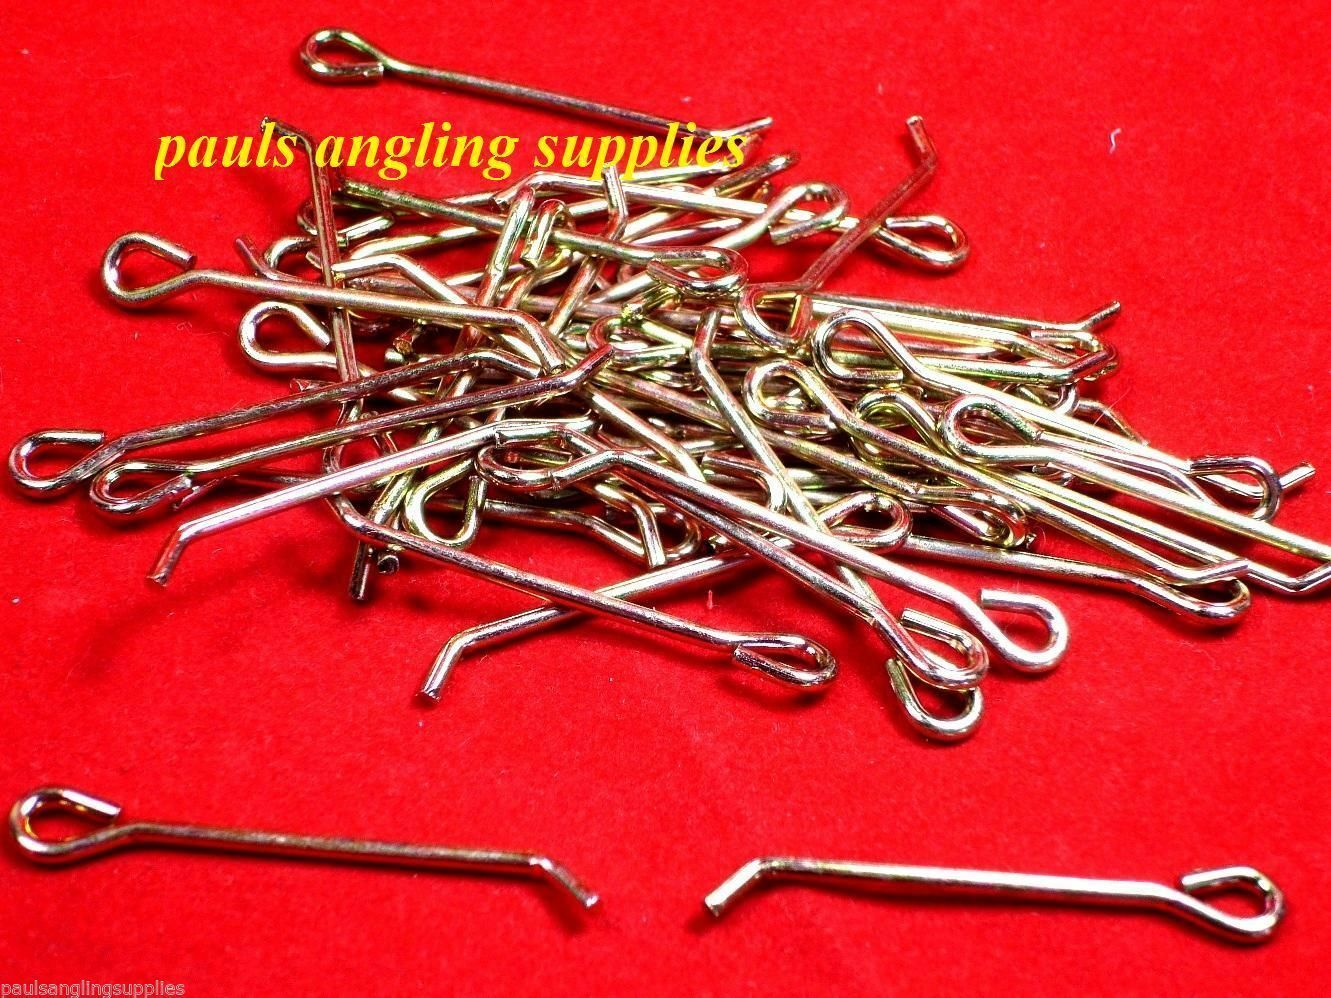 lead mould wires with bait clipsx 100 will fit grip lead moulds and others.